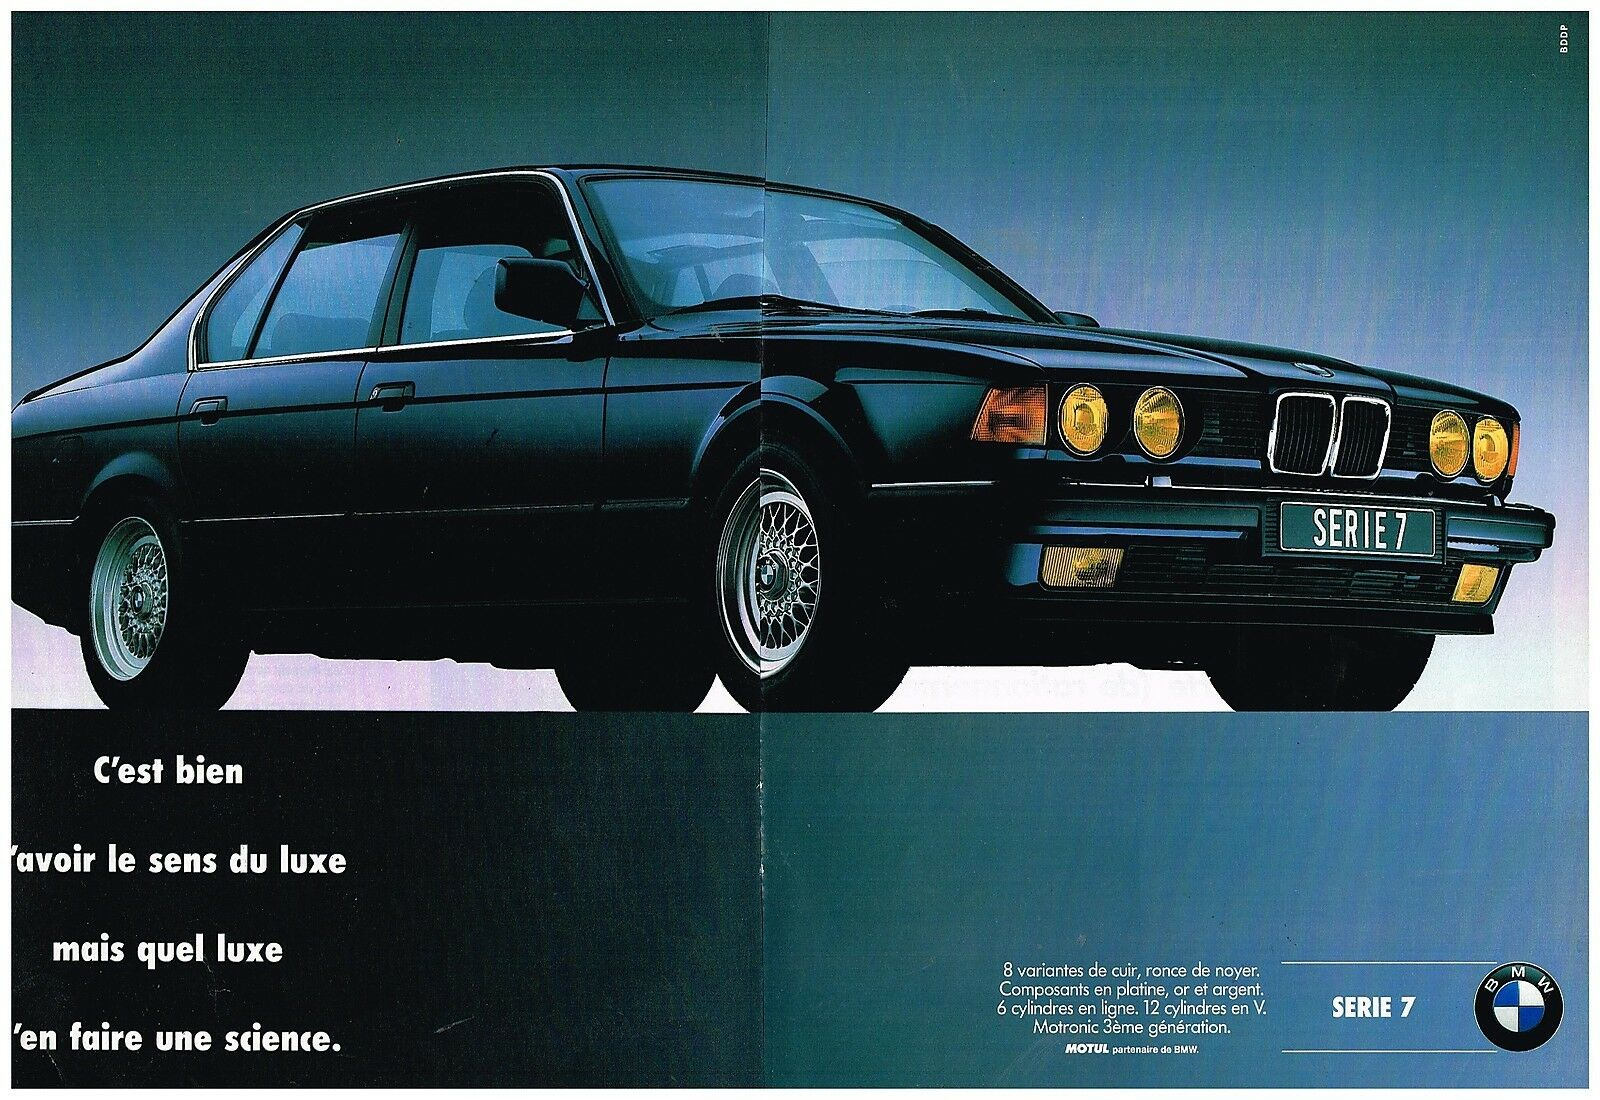 publicit advertising 1990 2 pages bmw serie 7 eur 5 00 picclick fr. Black Bedroom Furniture Sets. Home Design Ideas